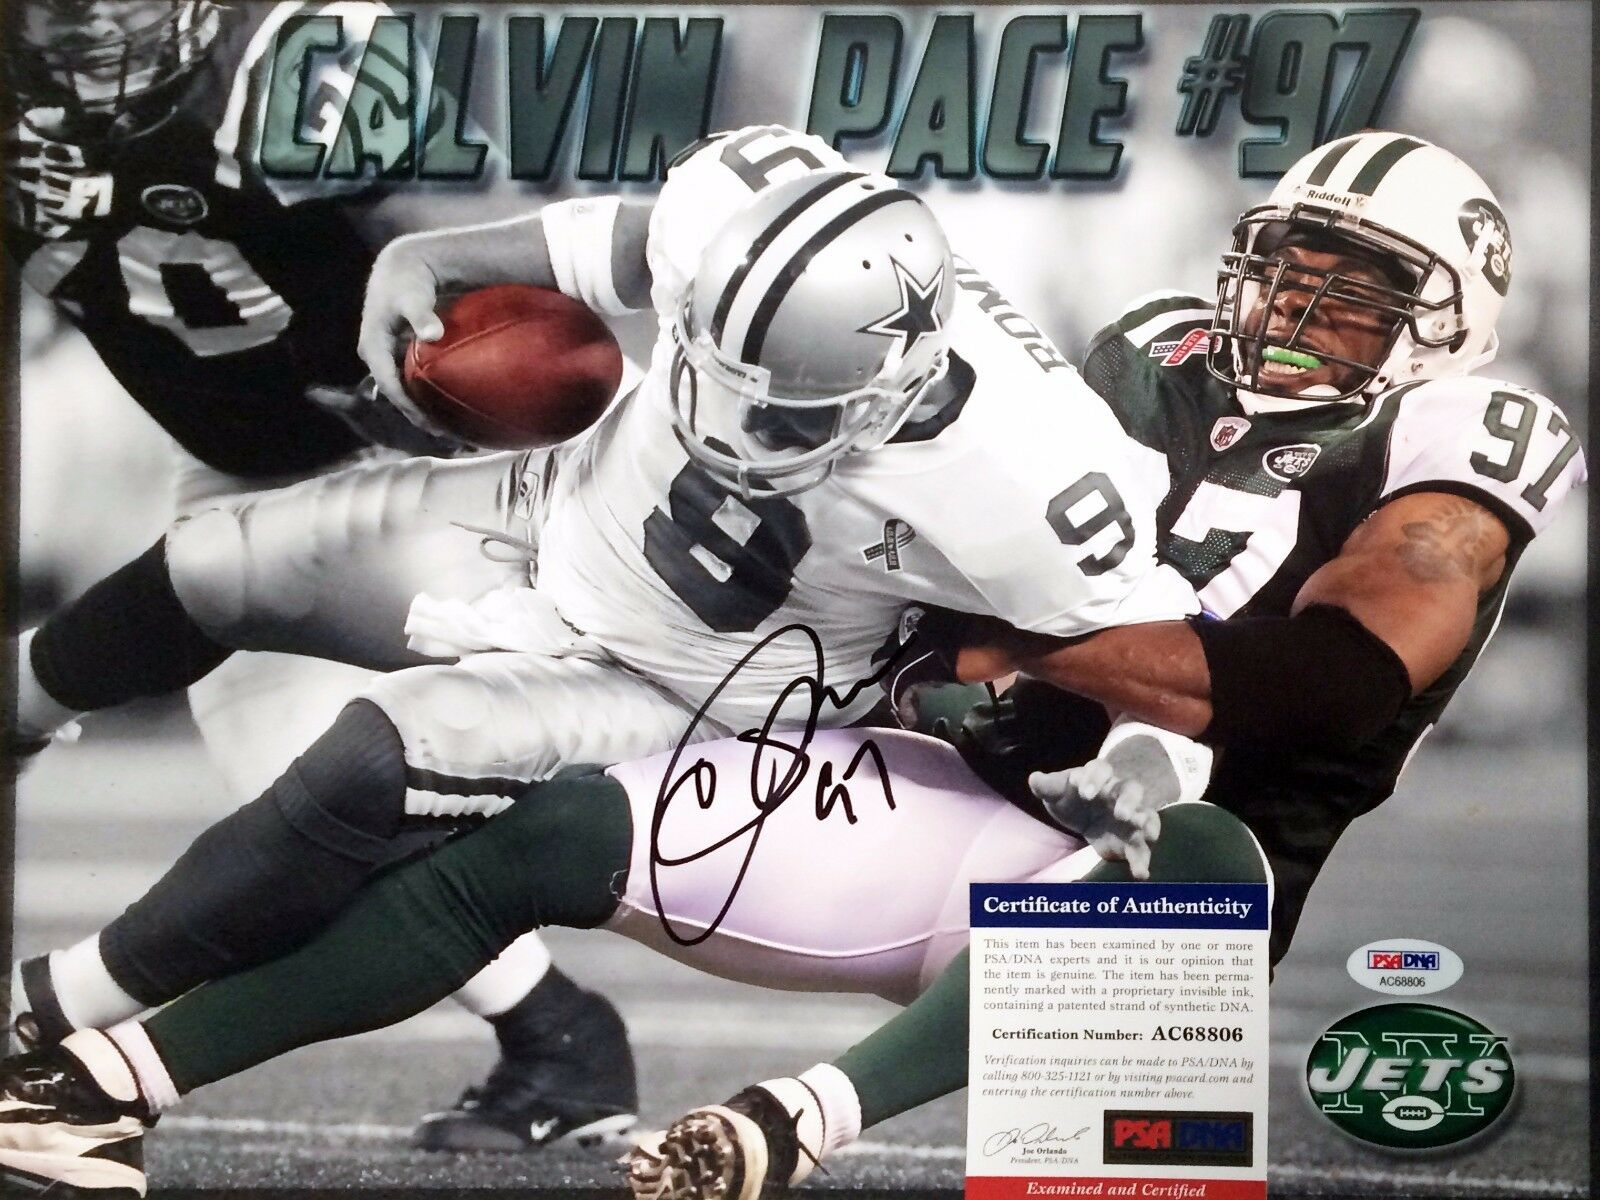 New York Jets Calvin Pace Signed 11x14 photo PSA/DNA AC68806